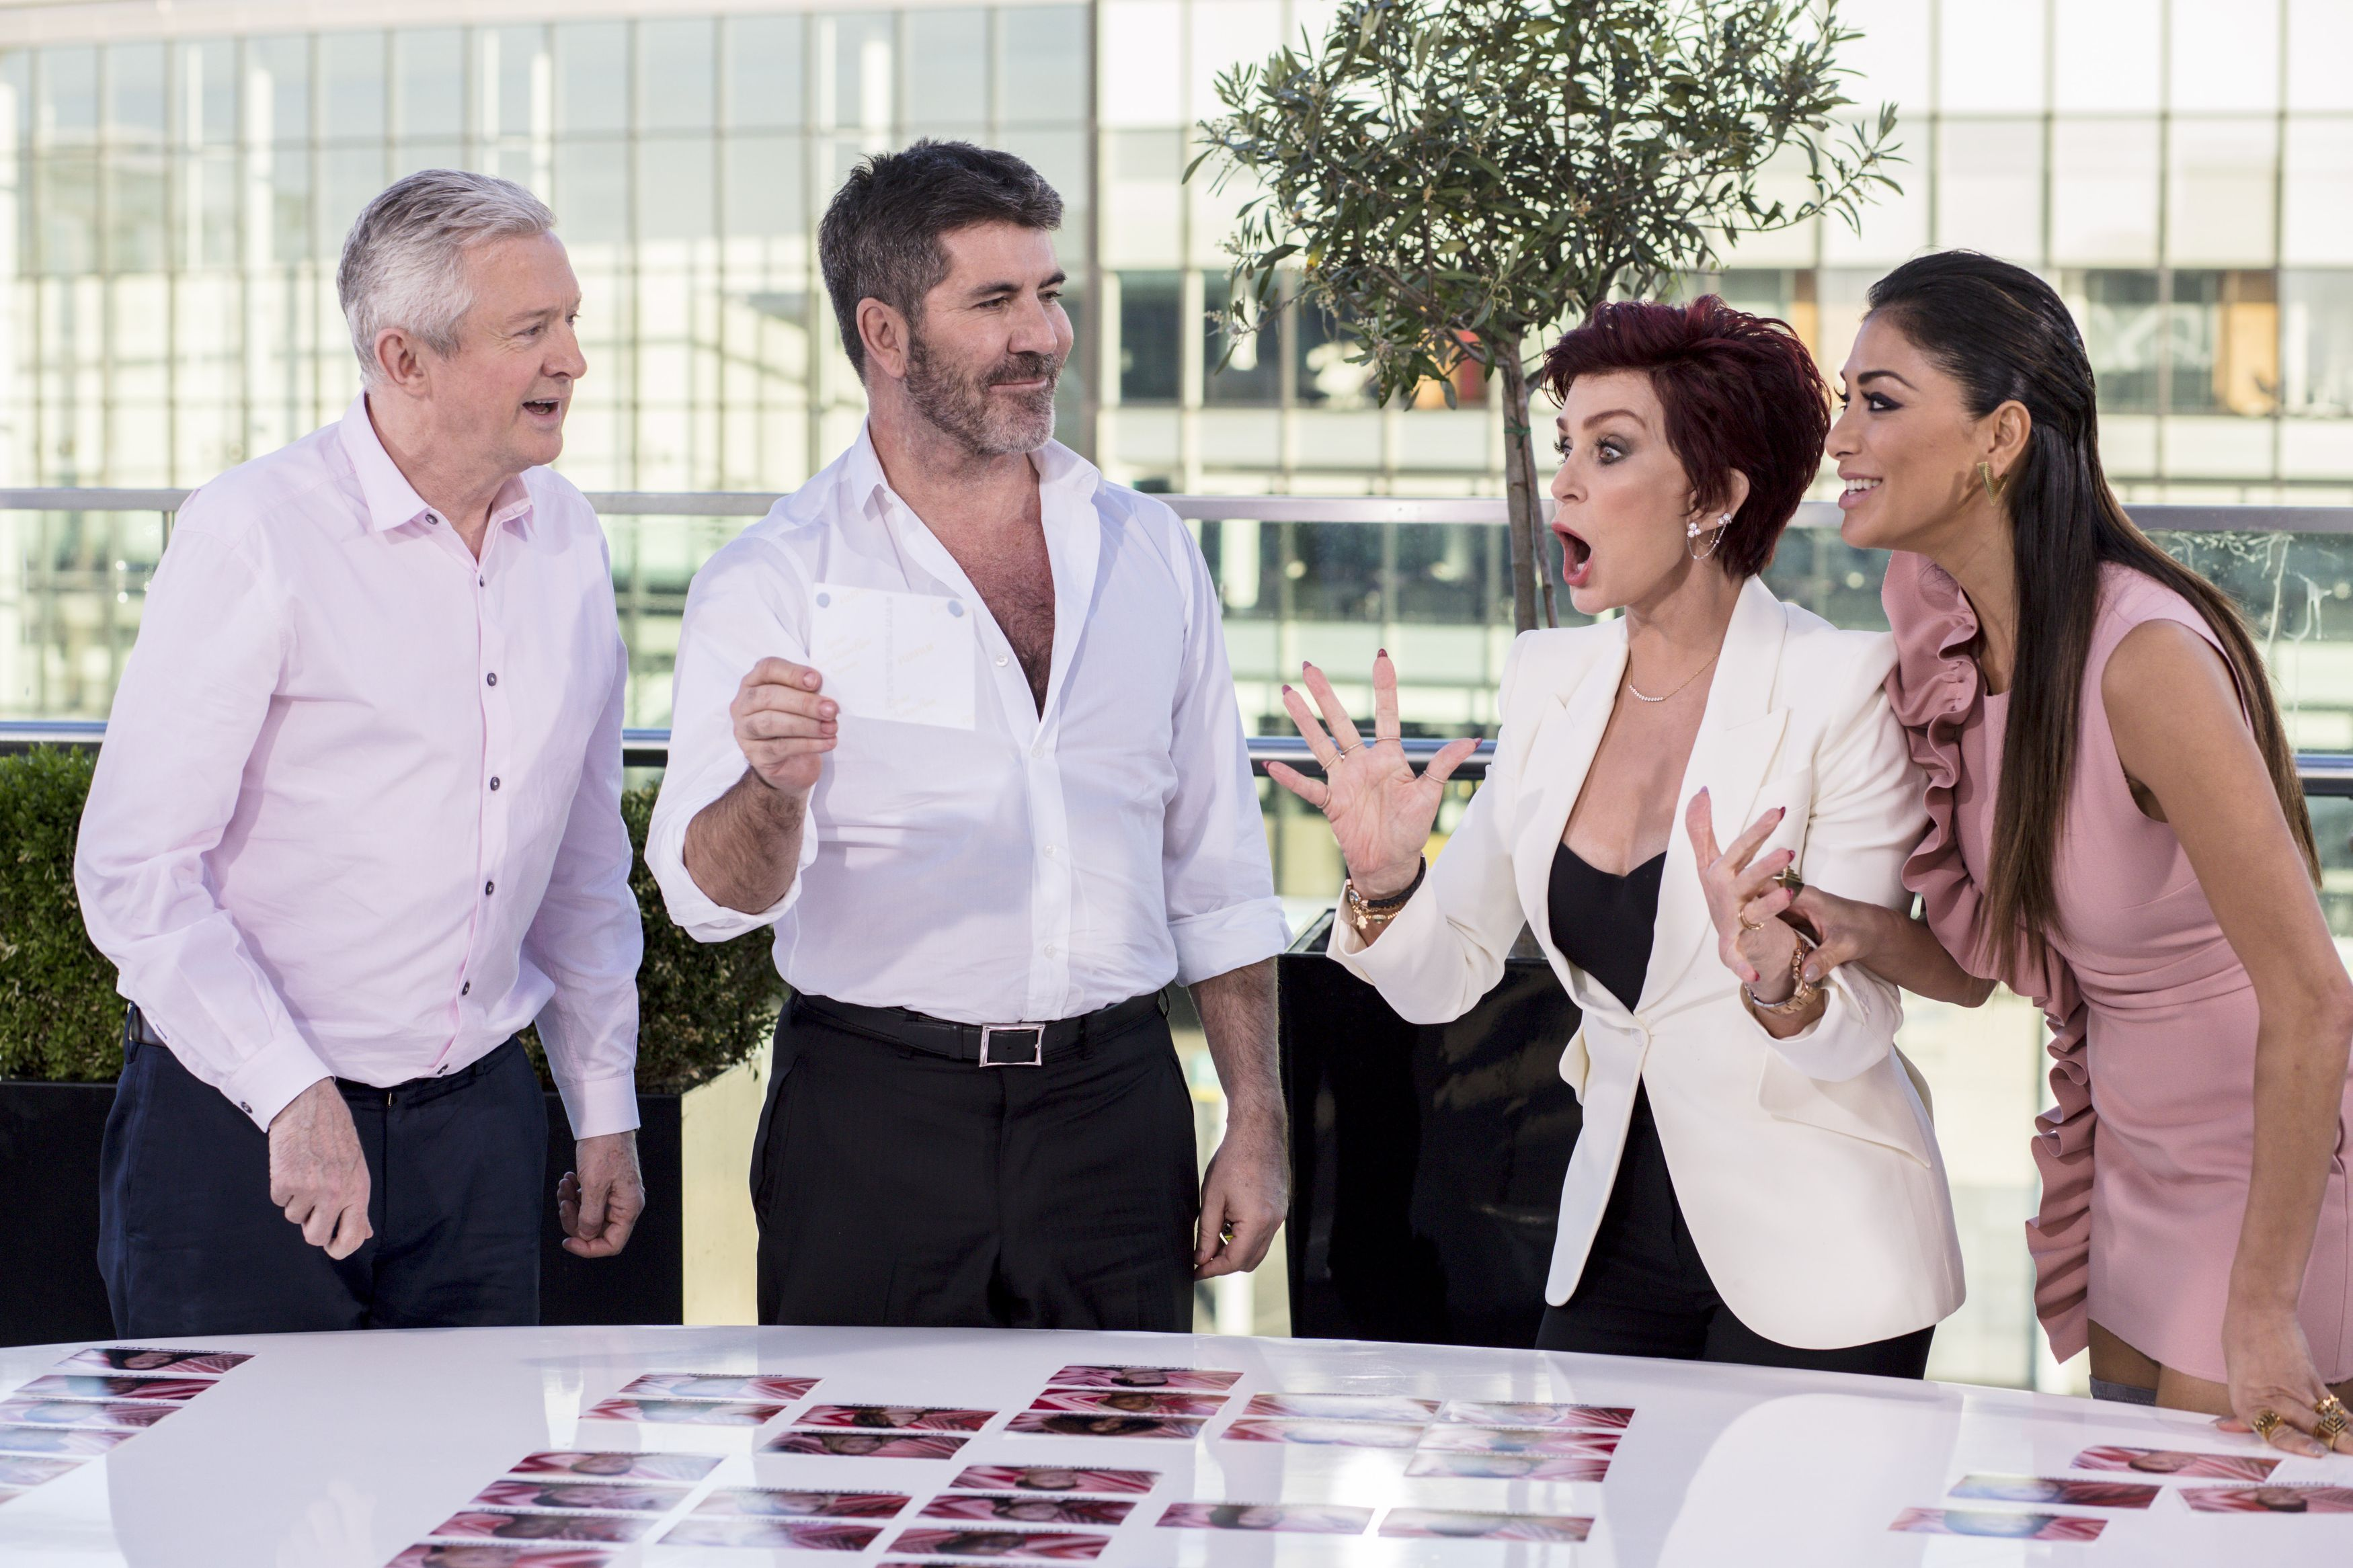 Sharon Osbourne with Louis Walsh, Simon Cowell and Nicole Scherzinger on The X Factor